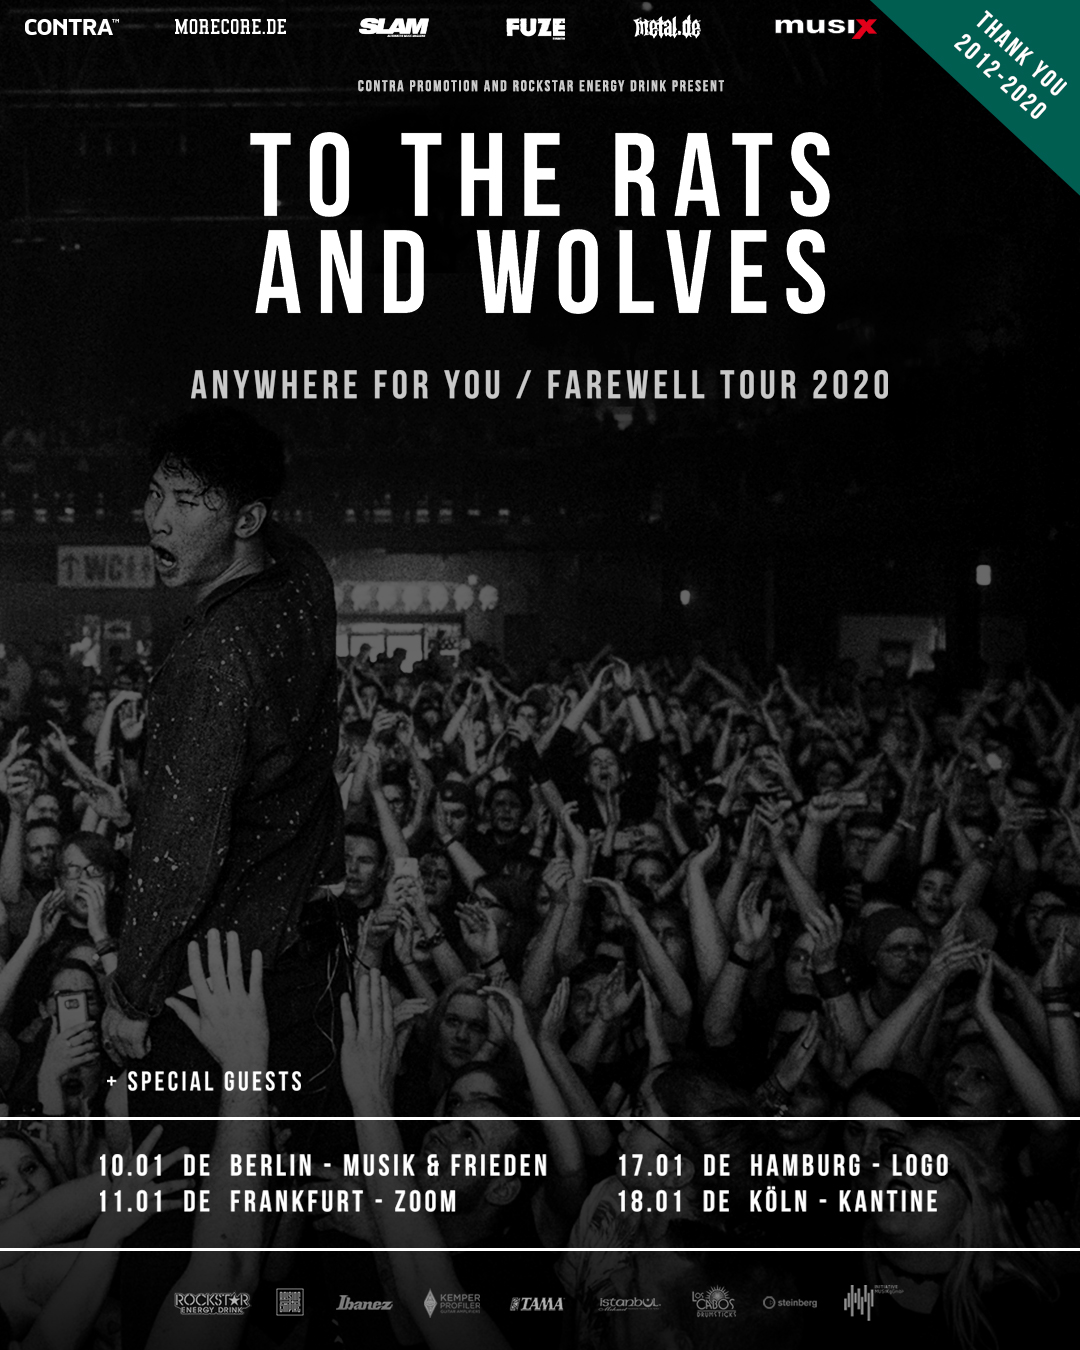 To The Rats And Wolves Farewell Tour 2020